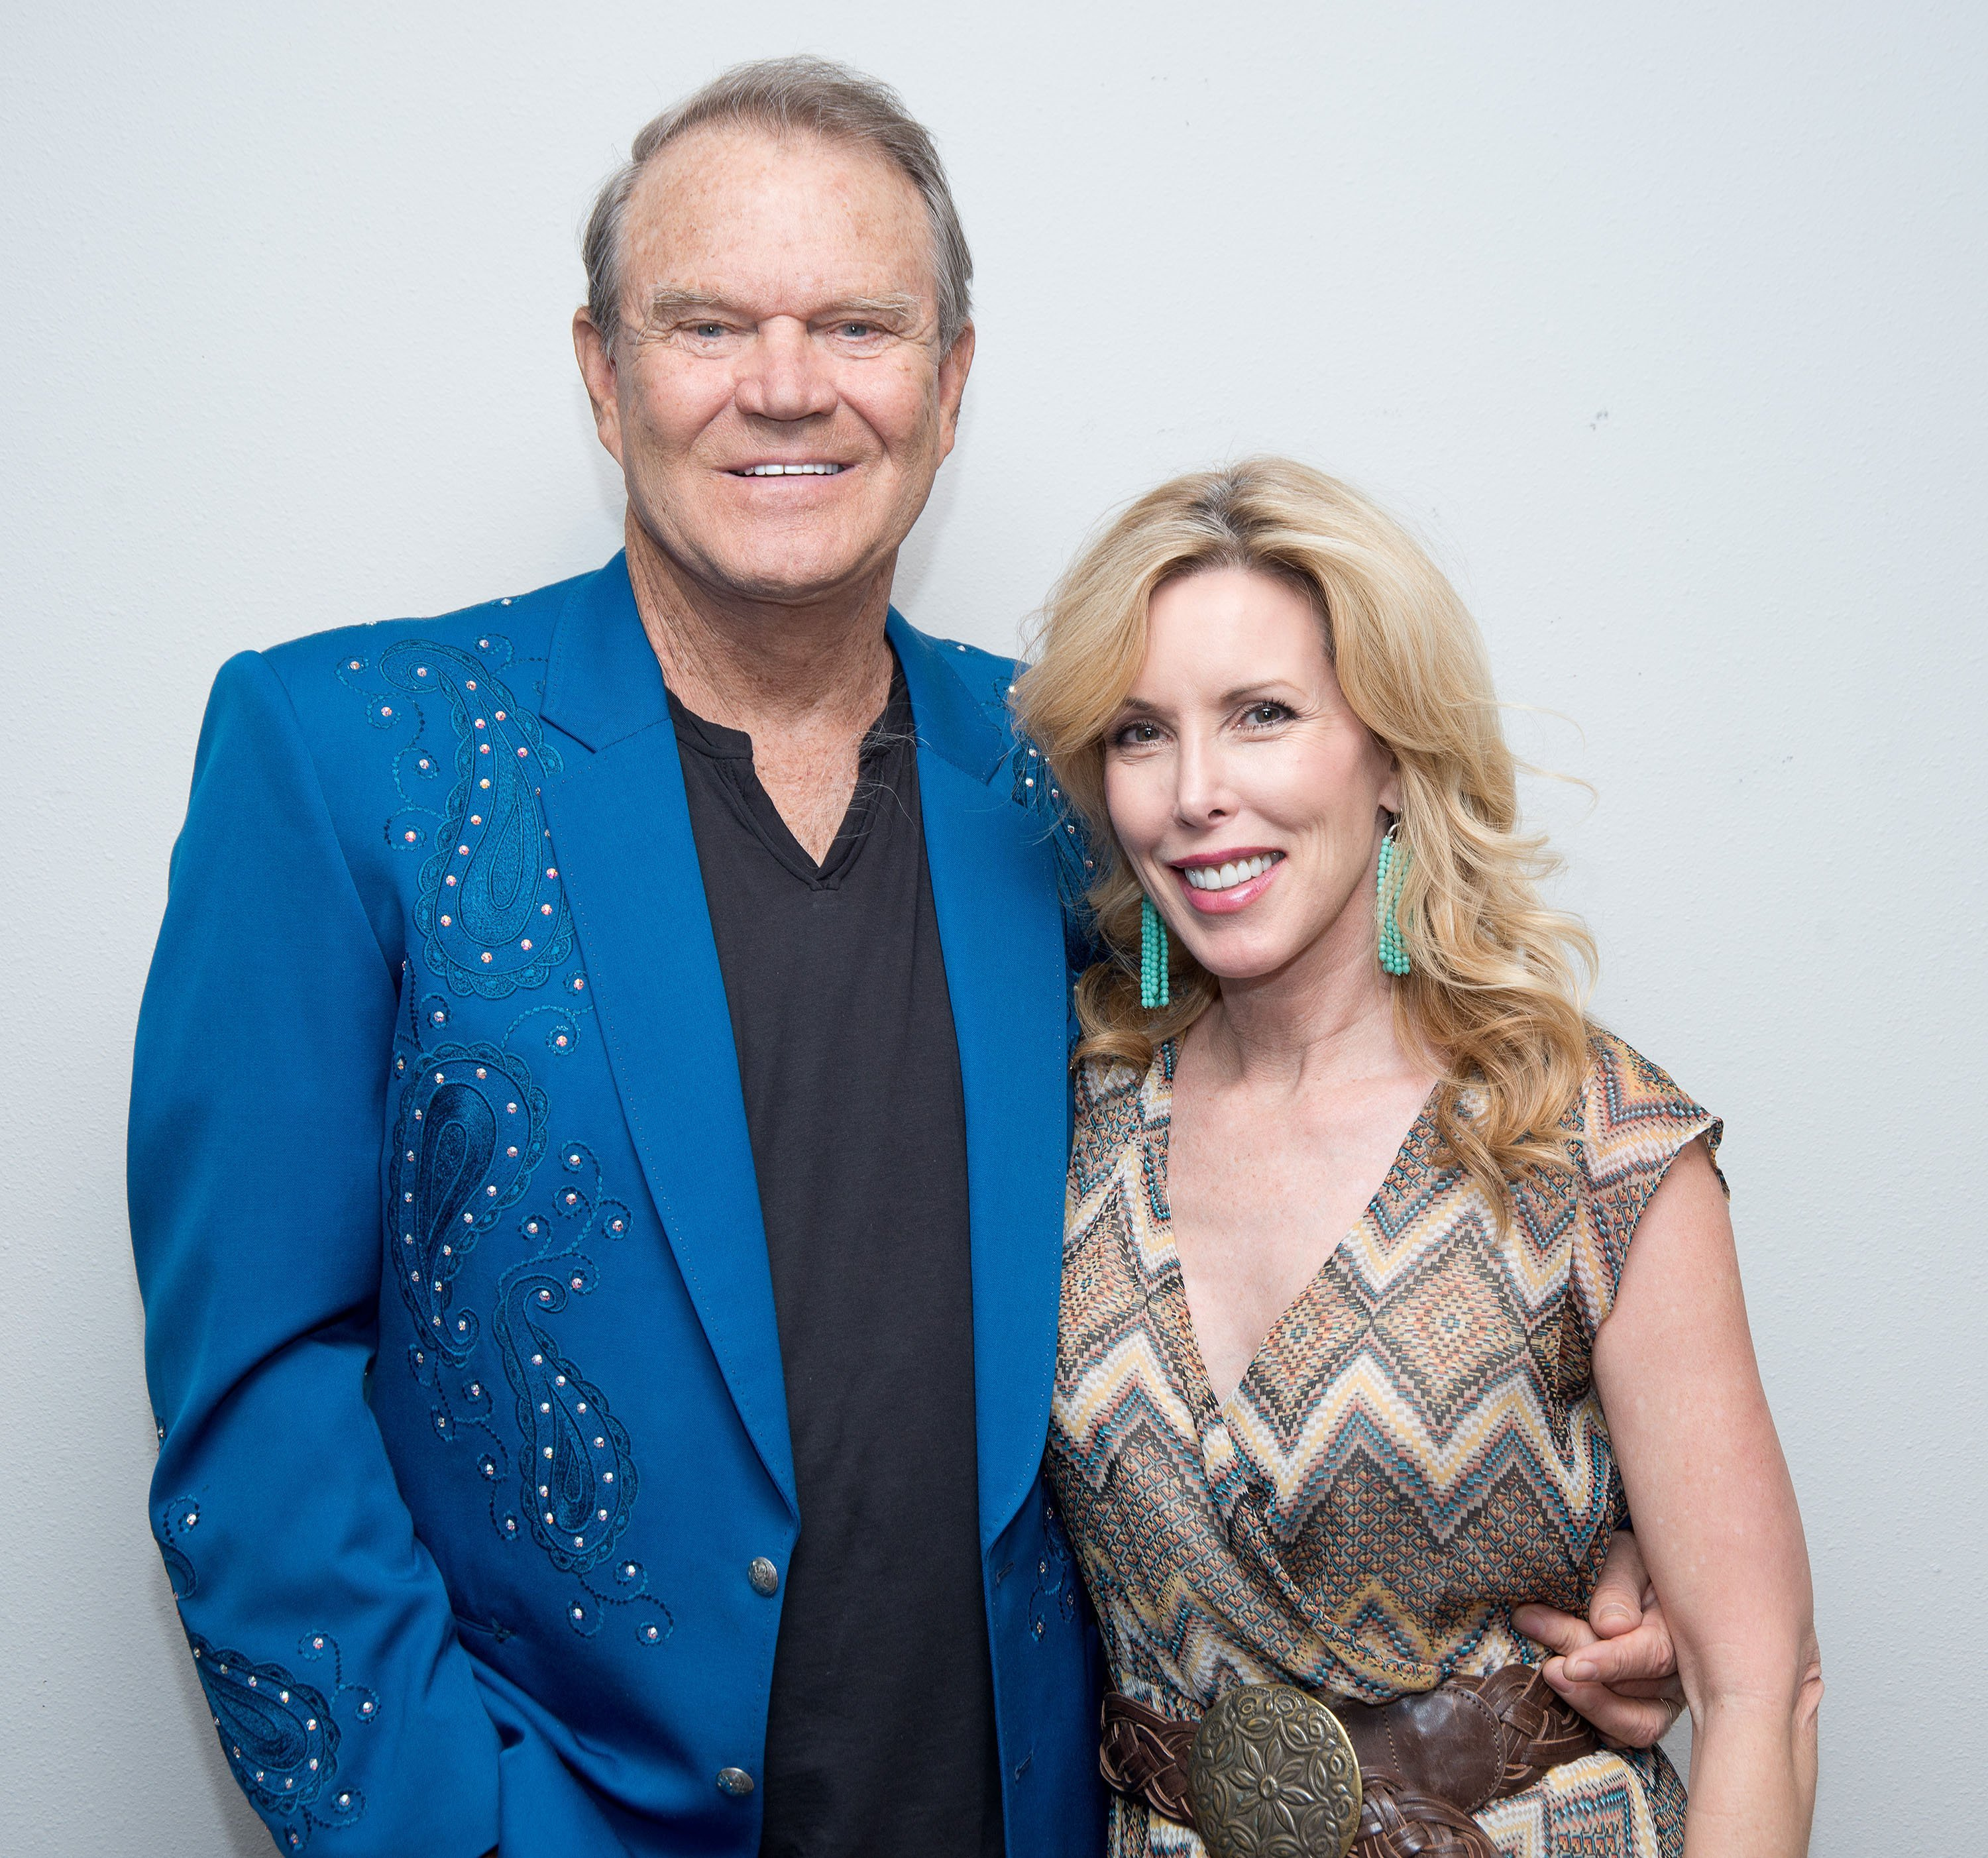 Glen Campbell & Kim following his Goodbye Tour performance in Albuquerque, New Mexico on July 29, 2012. |Photo: Getty Images